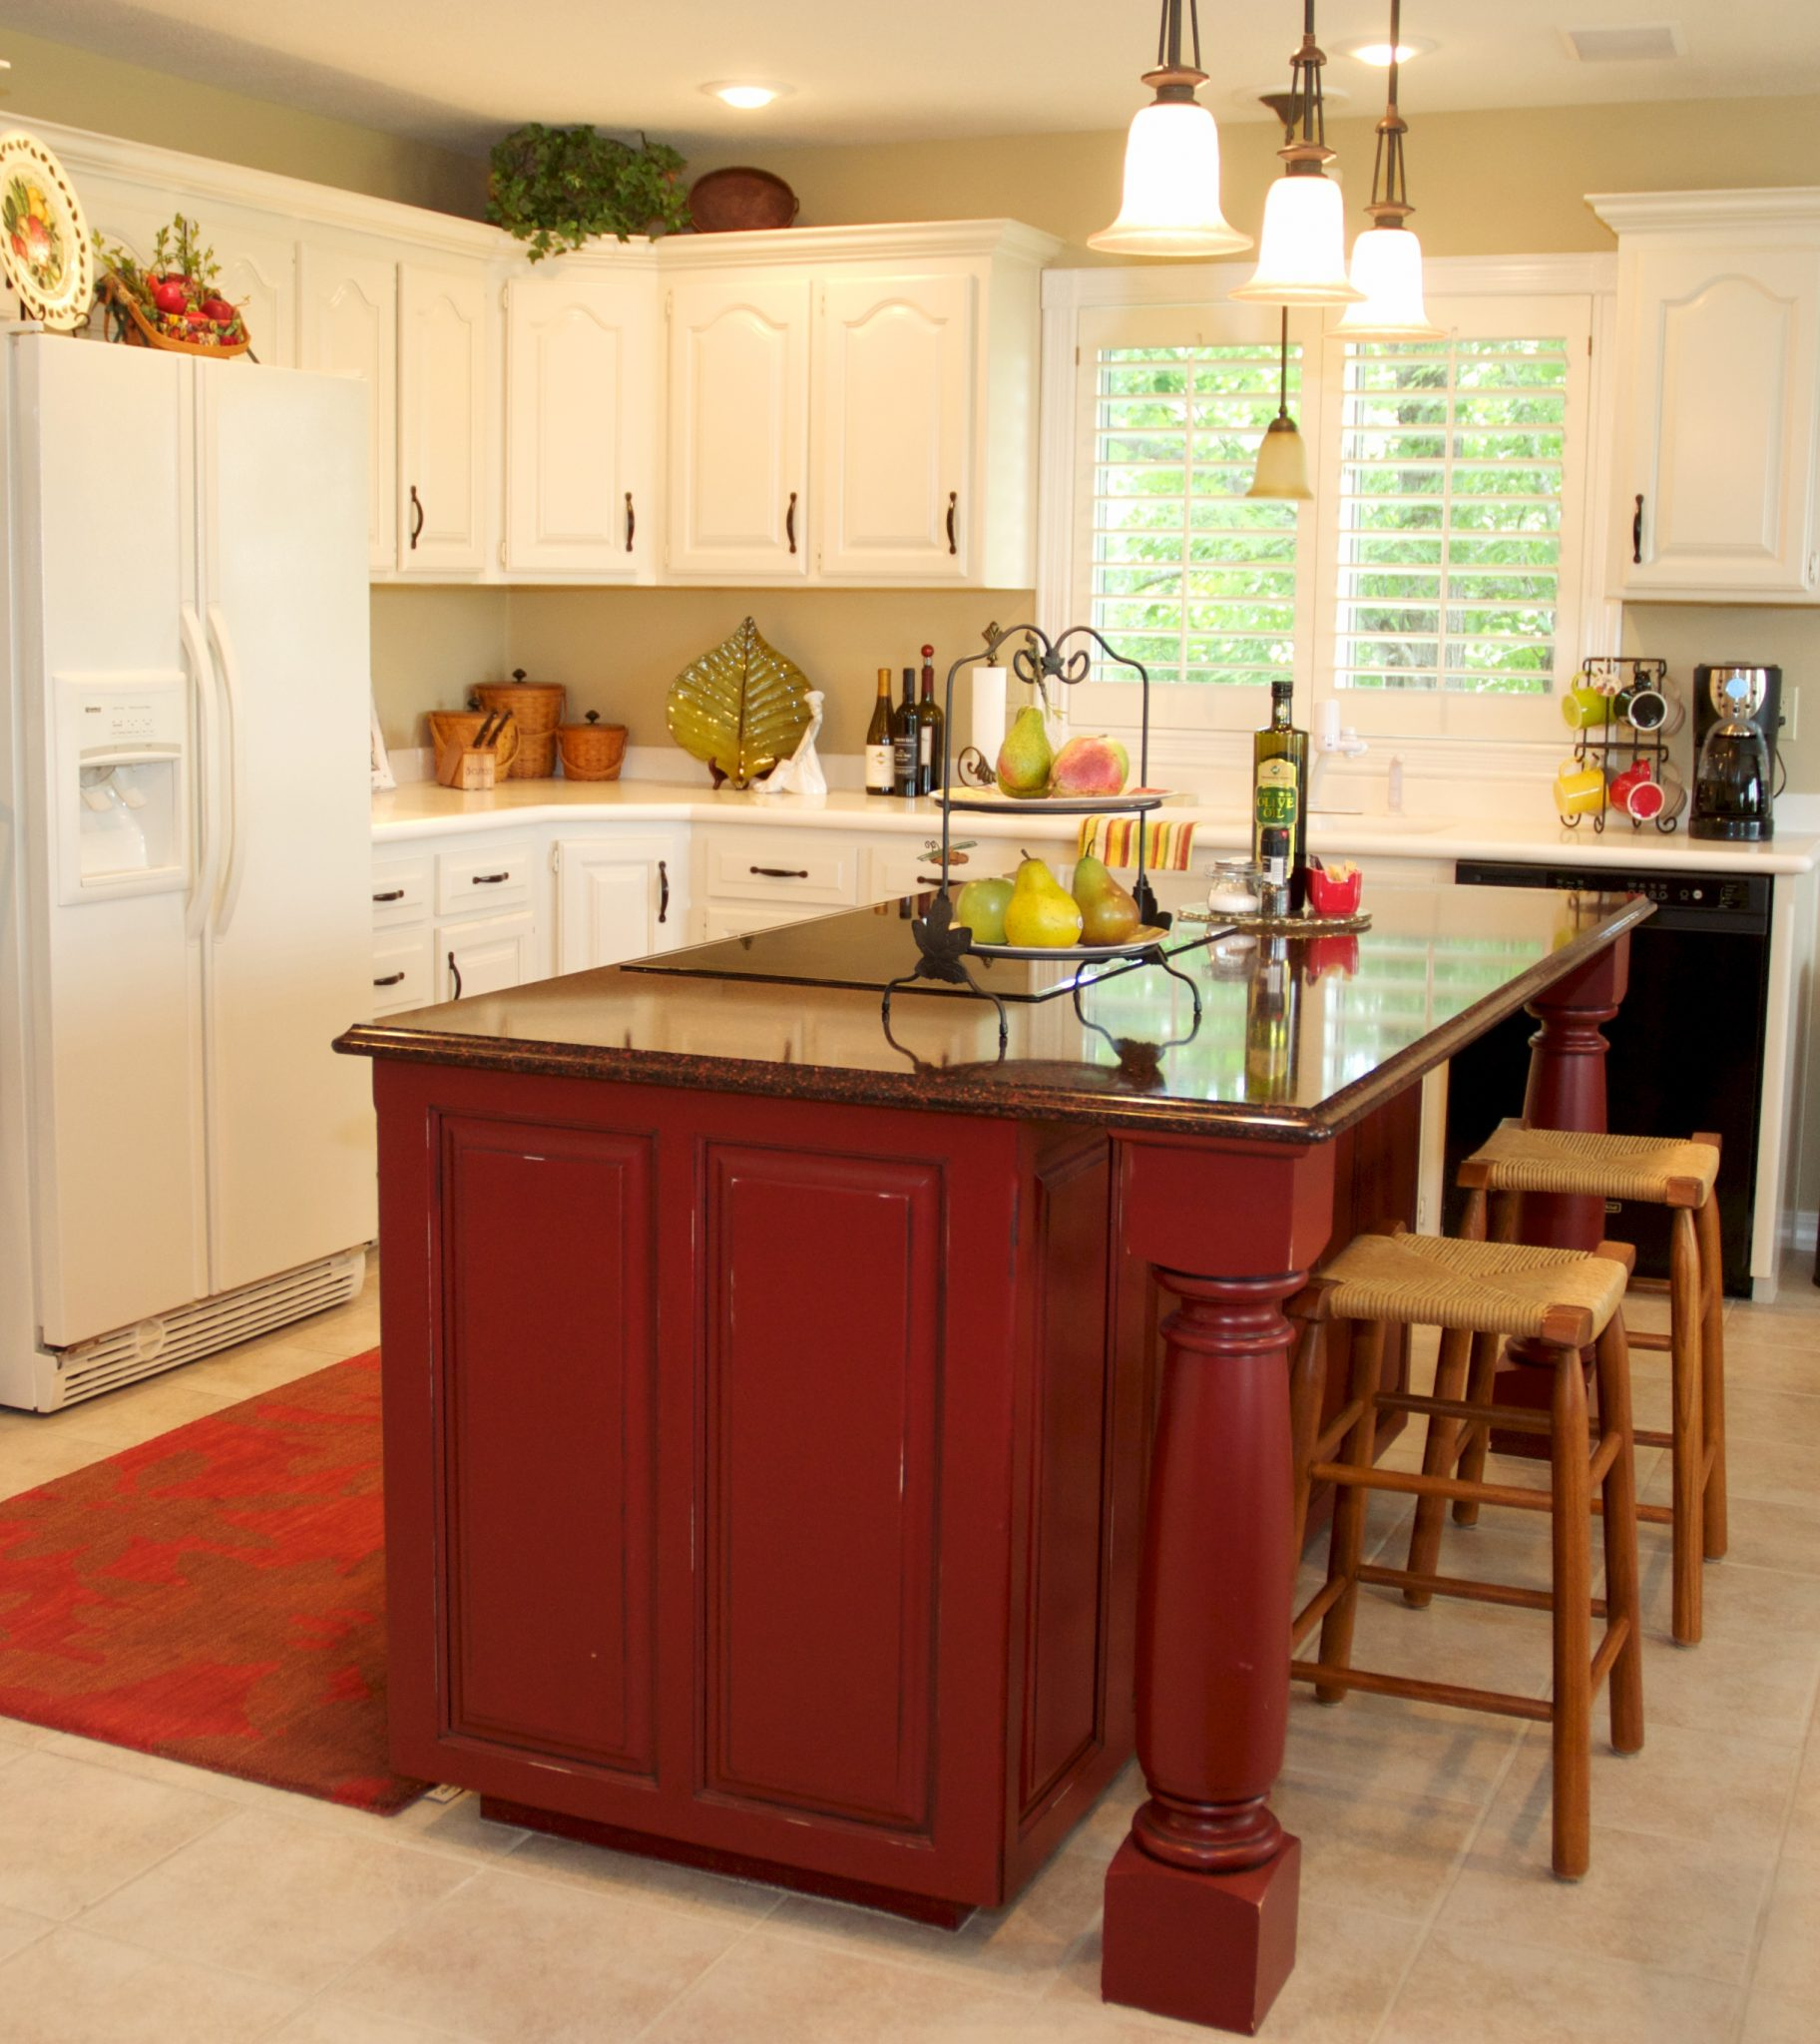 Top 8 Kitchen Trends of 2014